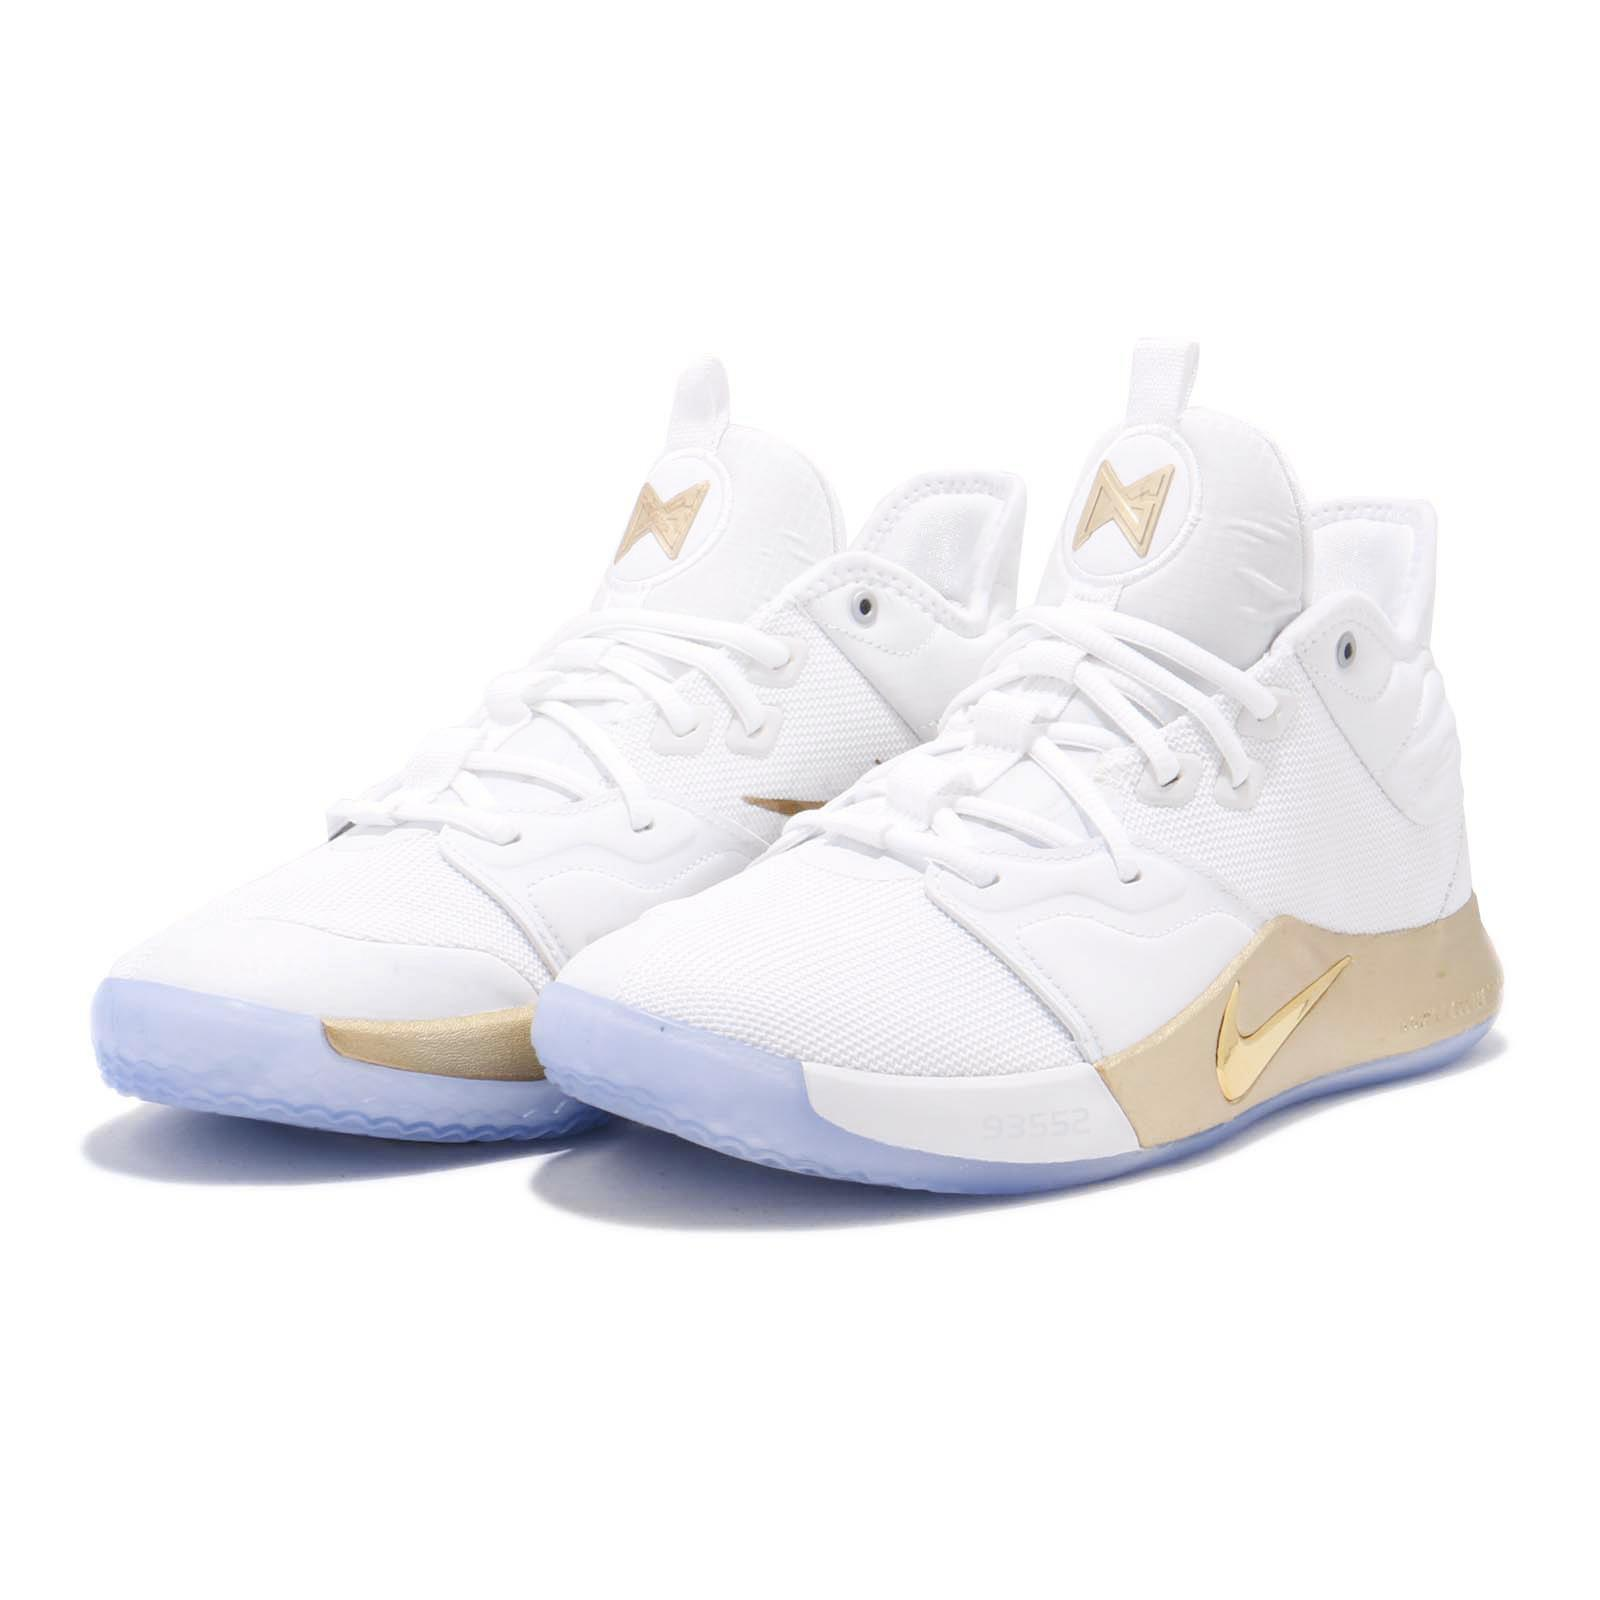 89c623c57ba Details about Nike PG 3 NASA EP Apollo Missions White Gold Paul George Mens  Shoes CI2667-100